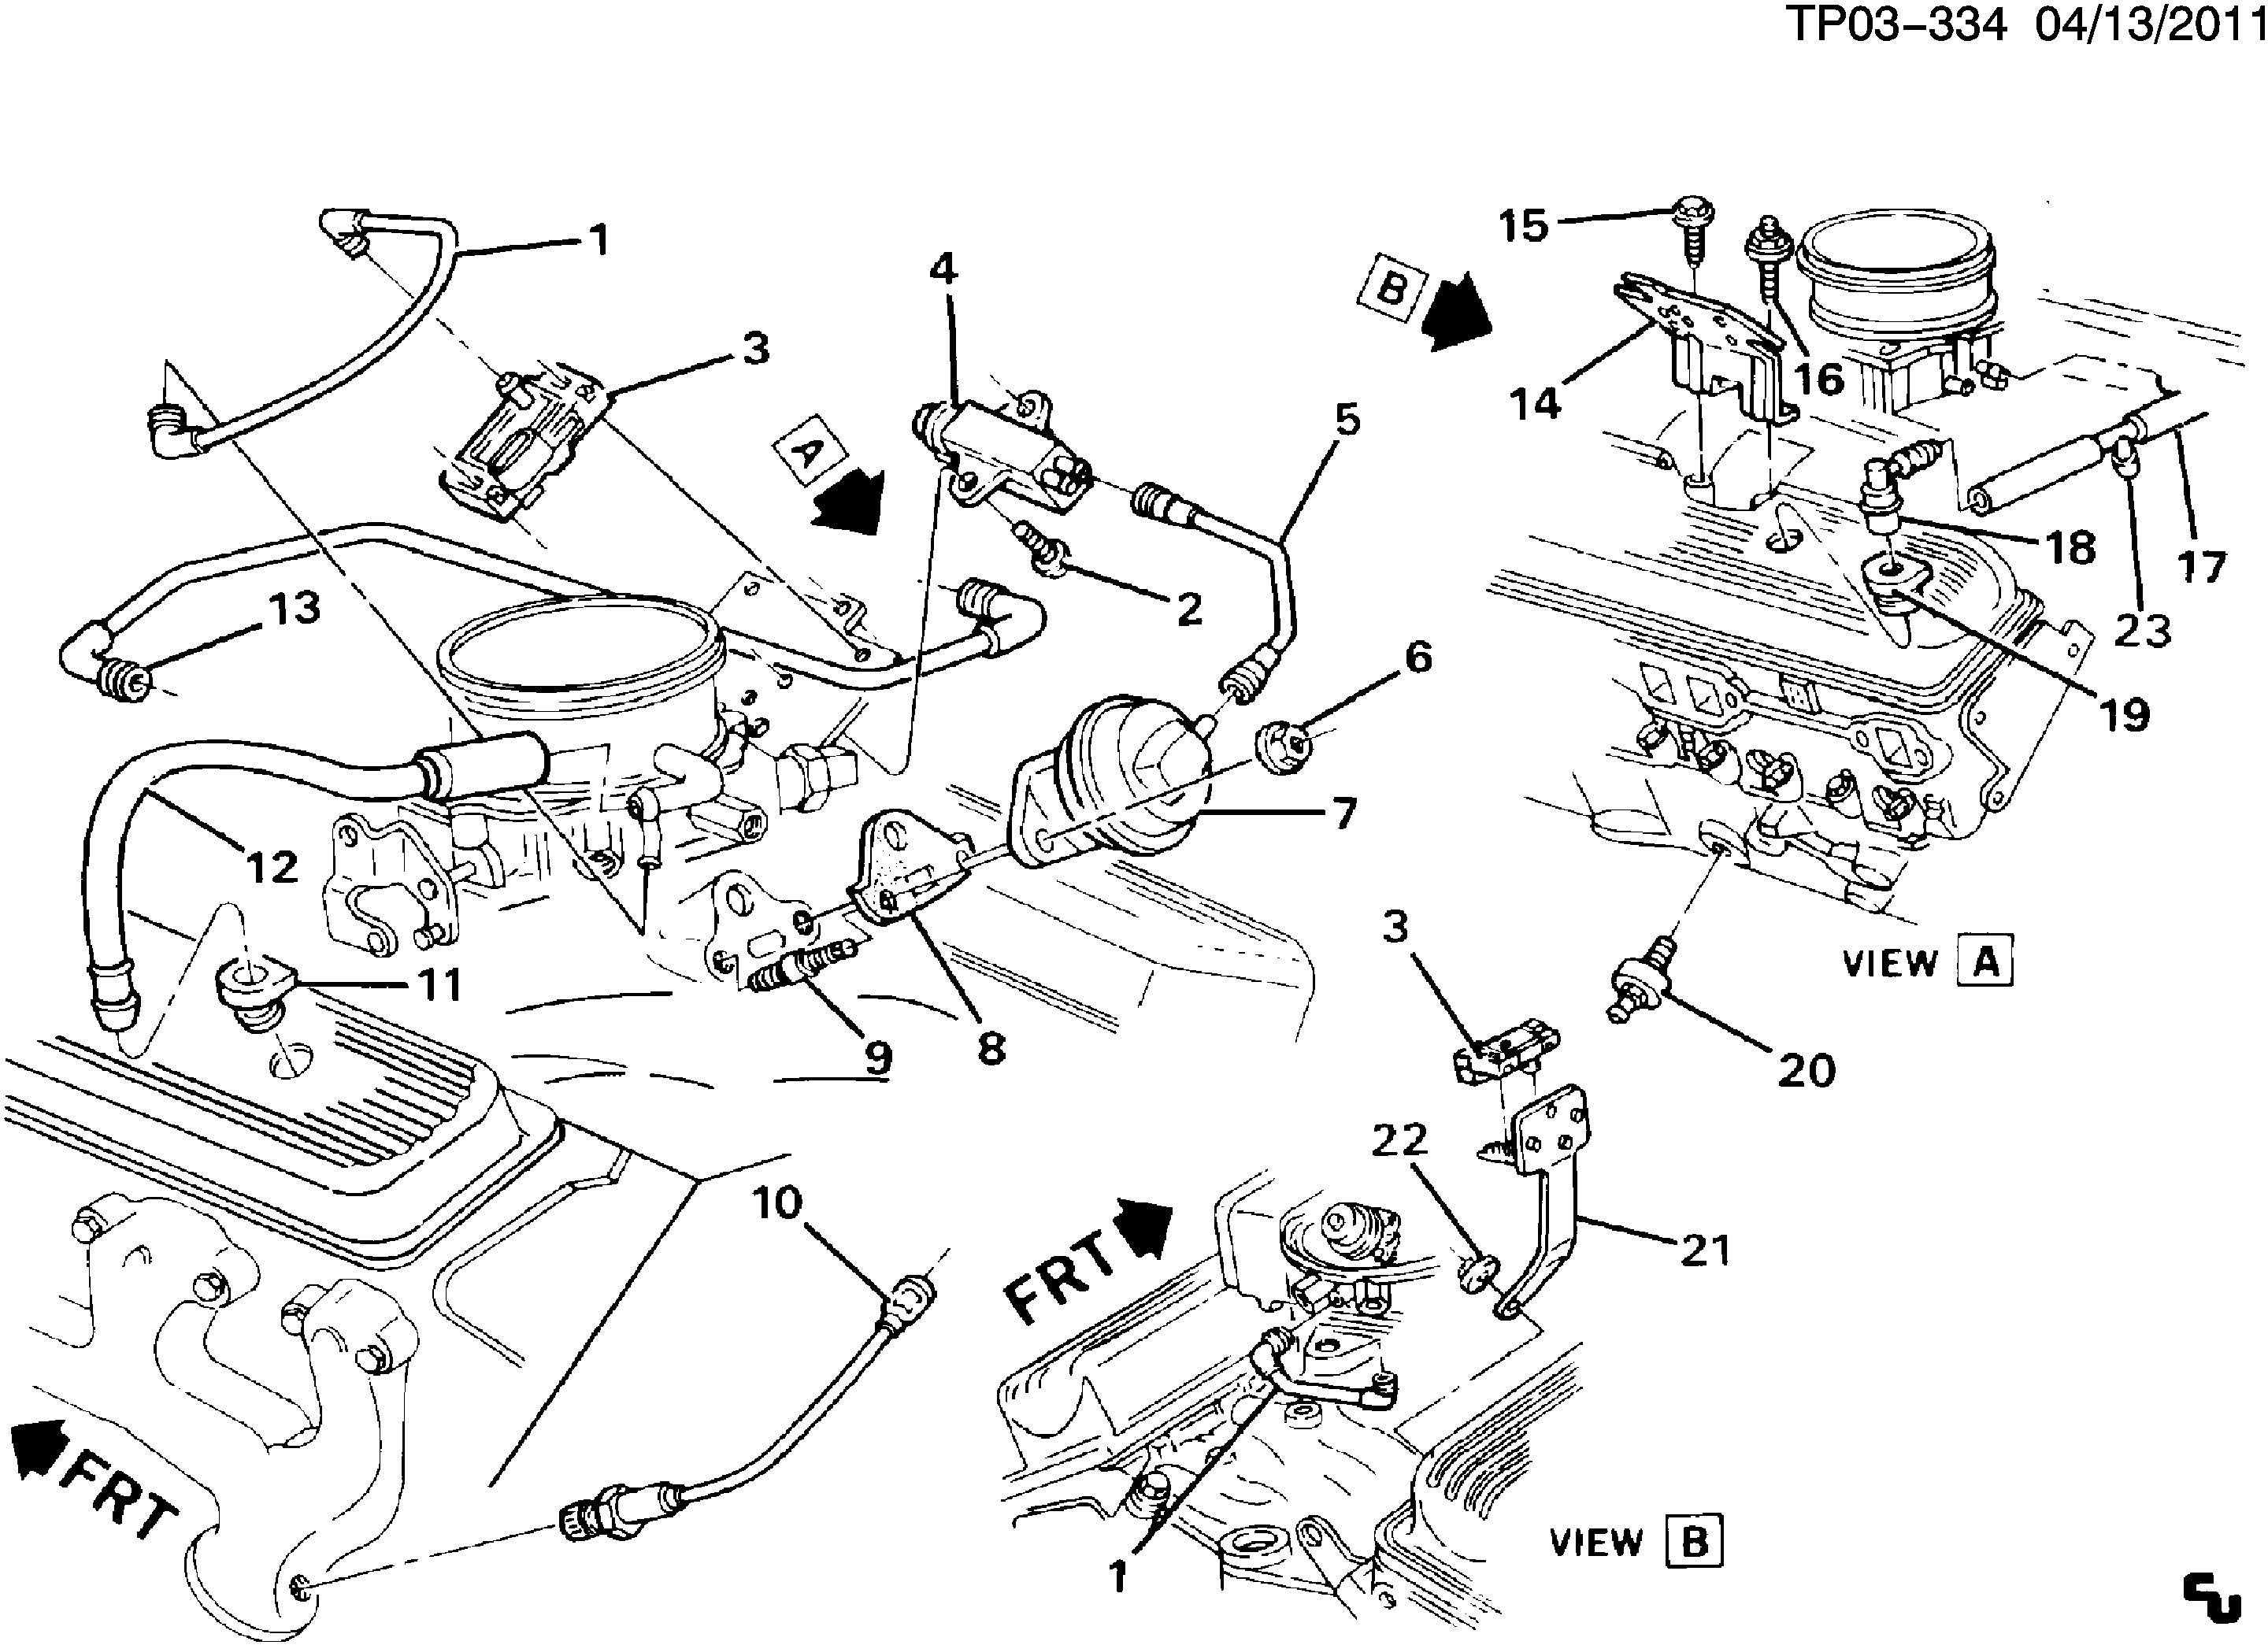 Chevy 350 Engine Parts Diagram 1977 Starter Wiring 5 7 Liter Chevrolet Diagrams Instructions Of